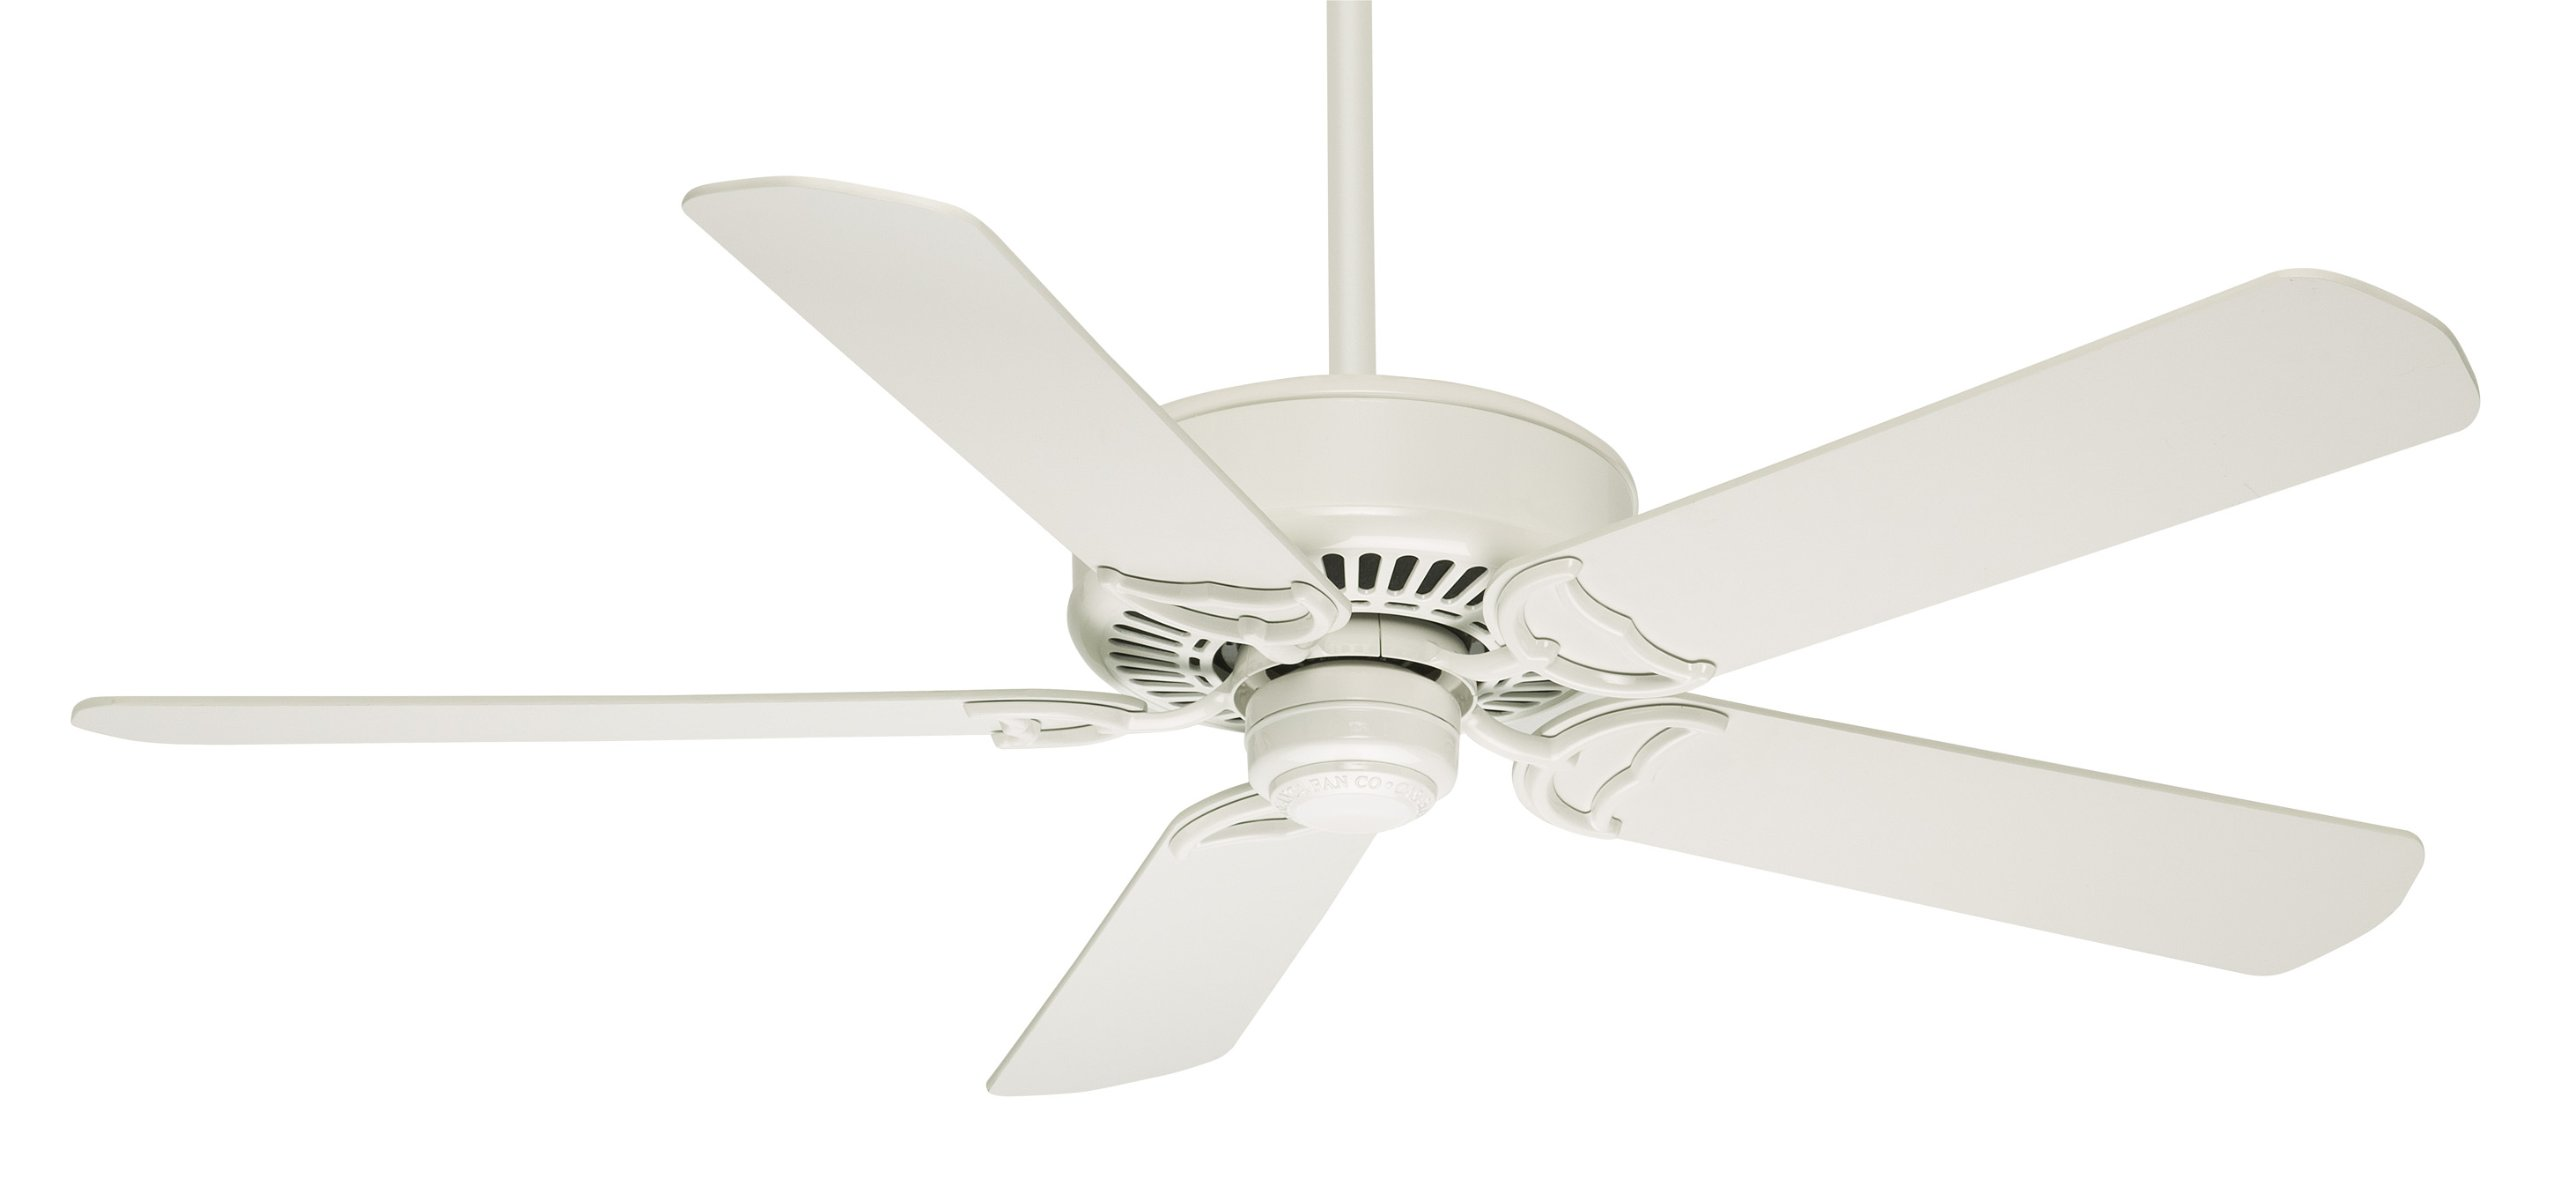 Casablanca 59510 Panama DC 54-Inch 5-Blade Ceiling Fan, Snow White with Matte Snow White Blades